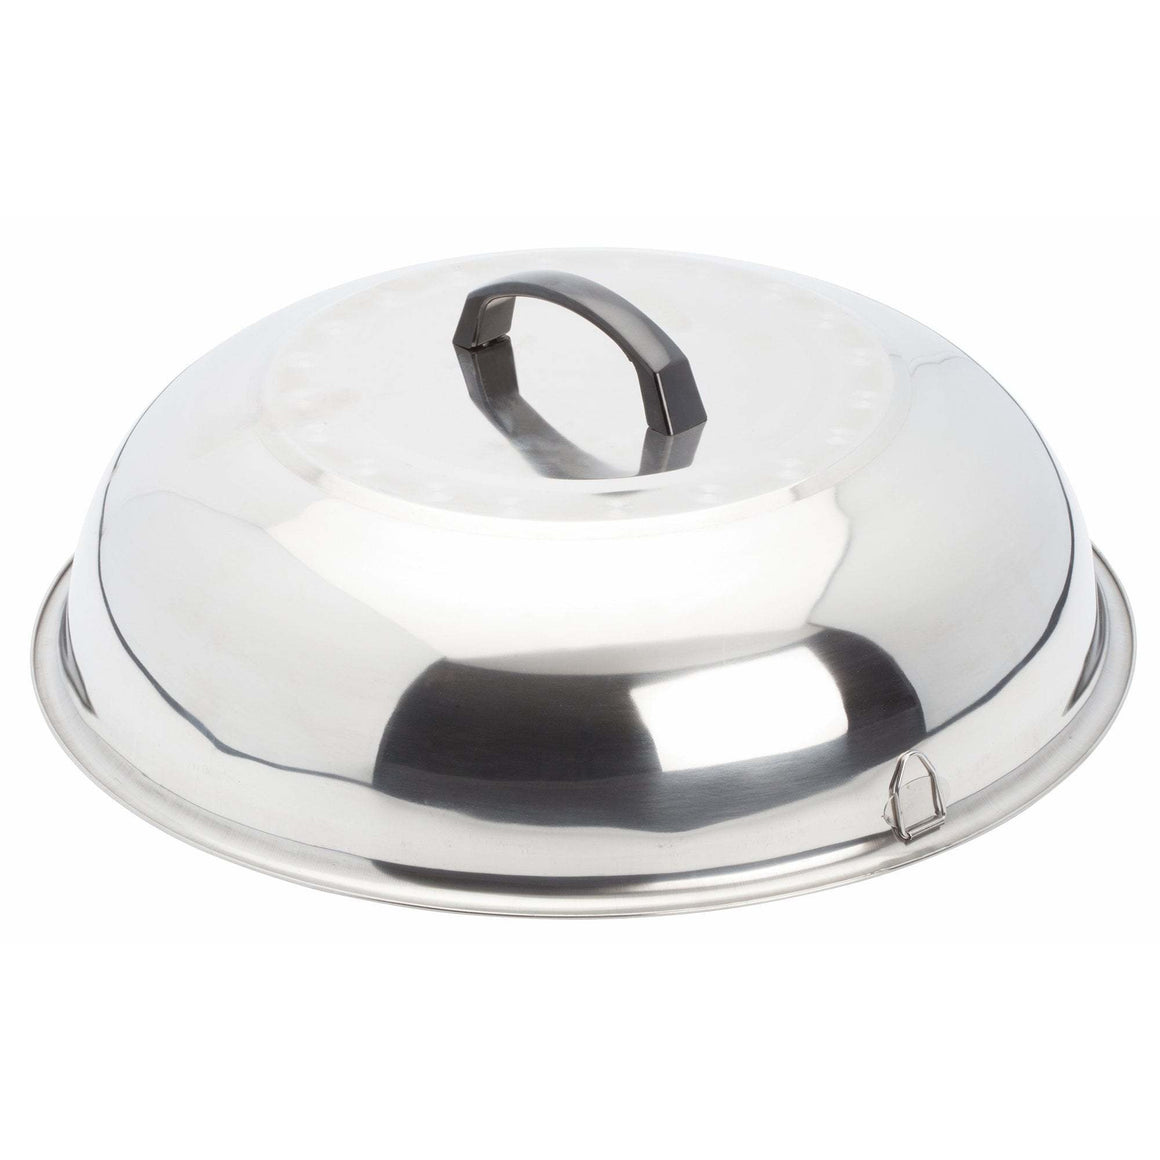 "Winco - WKCS-15 - 15-3/8"" Stainless Steel Wok Cover - Cookware"